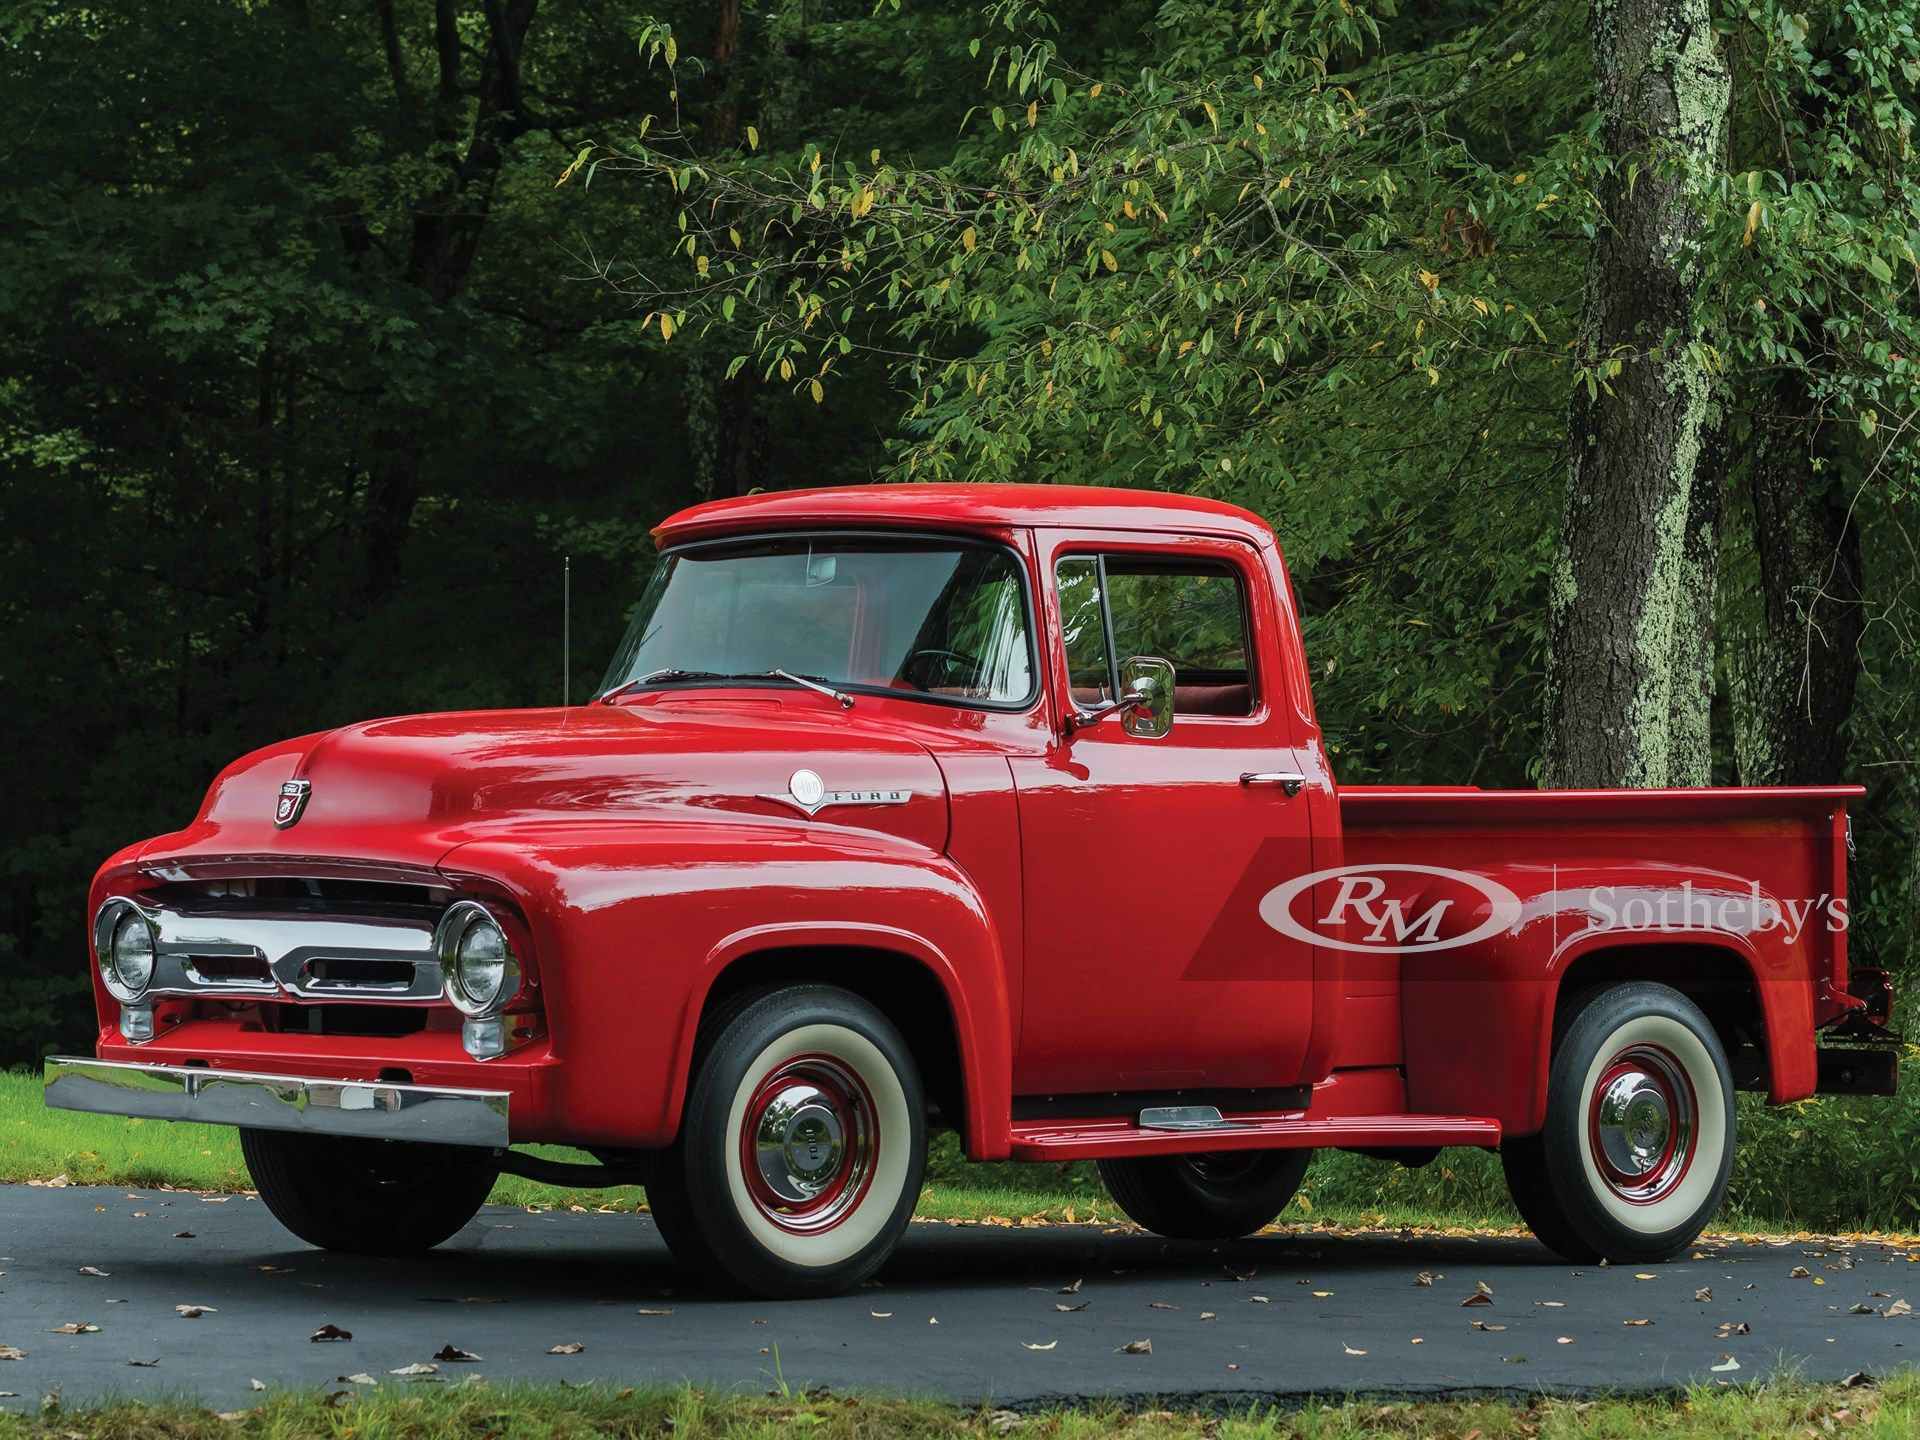 1956 Ford F 100 Pickup Hershey Recently Completed Restoration Noted As Having Been Driven 52 963 Actual Miles Natura 1956 Ford F100 1956 Ford Truck Ford Trucks